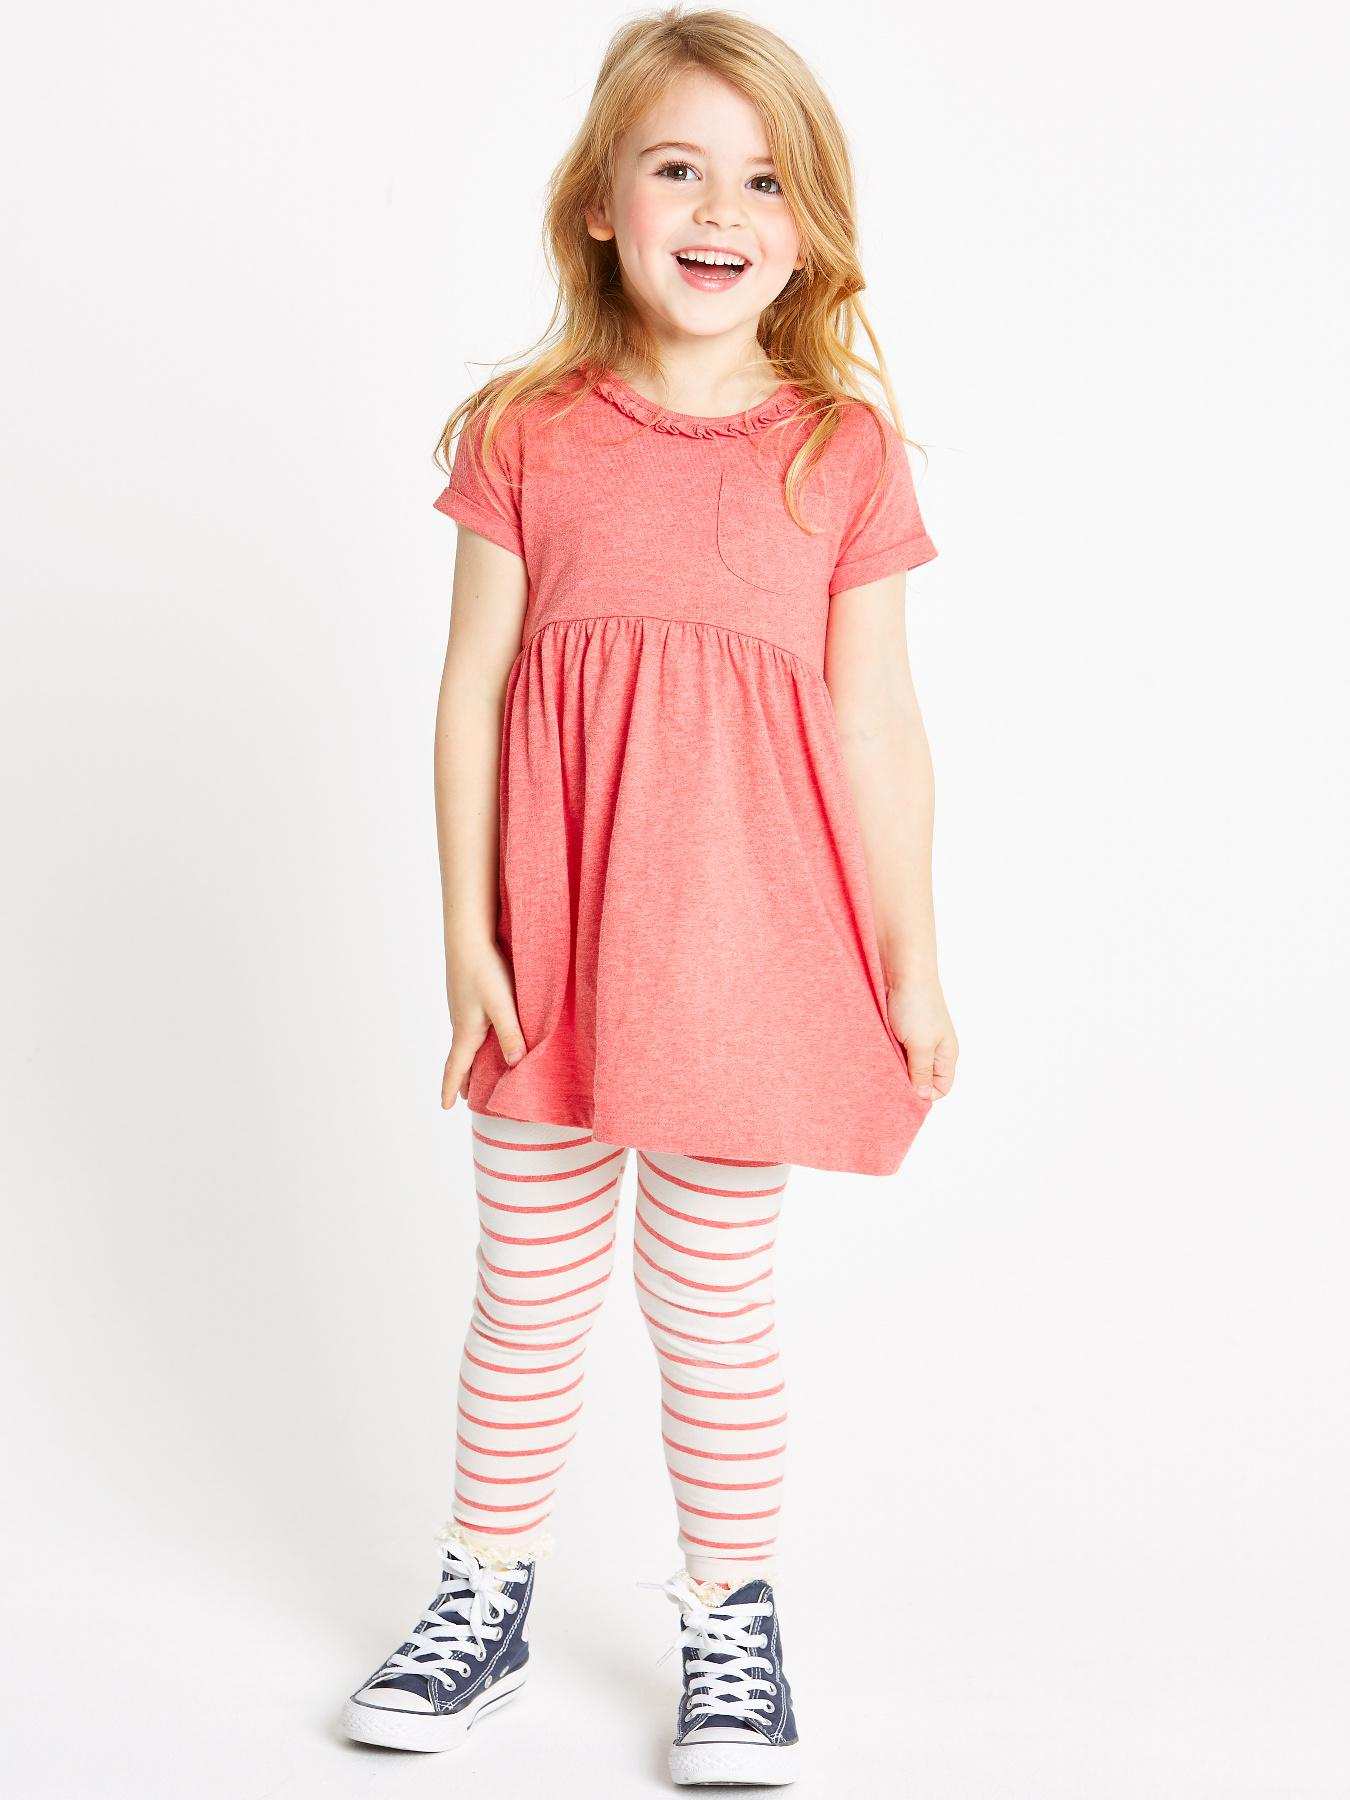 Girls' Clothing at Littlewoods. Prepare her wardrobe for the new season with girls' clothes here at Littlewoods. We've got the latest styles by brands like Joules, Monsoon and River Island. From outerwear to occasion wear and basic tops, tees and jeans, we have outfits for every event in her diary.